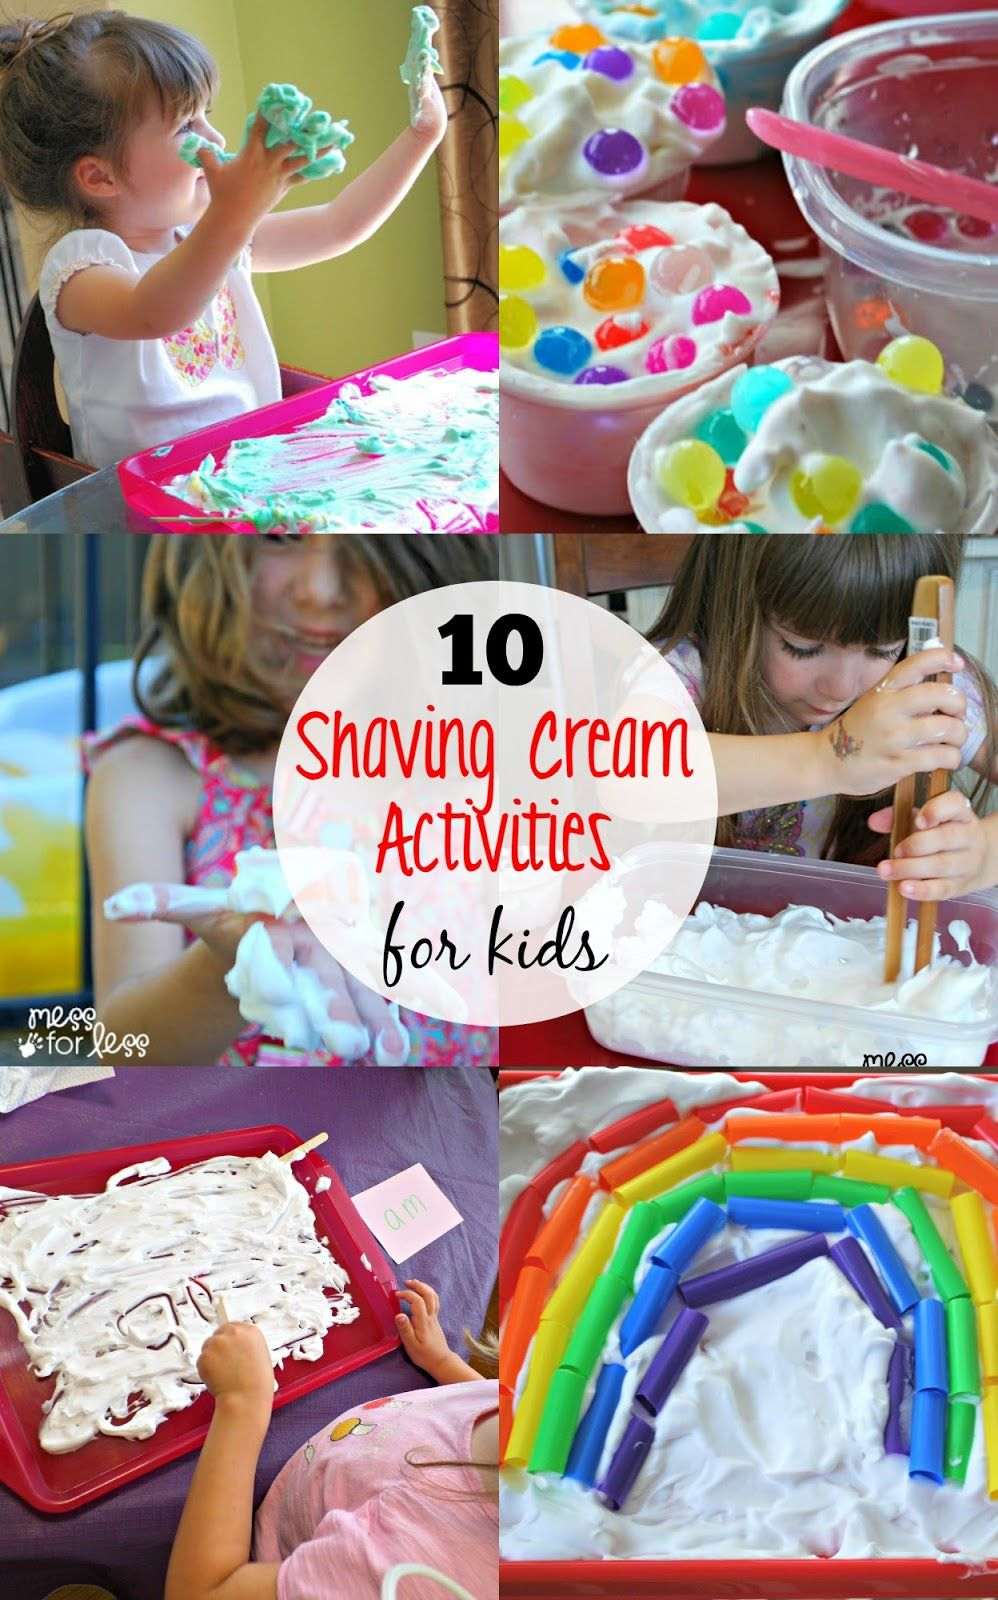 15 Team-Building Activities For Kids - Care.com